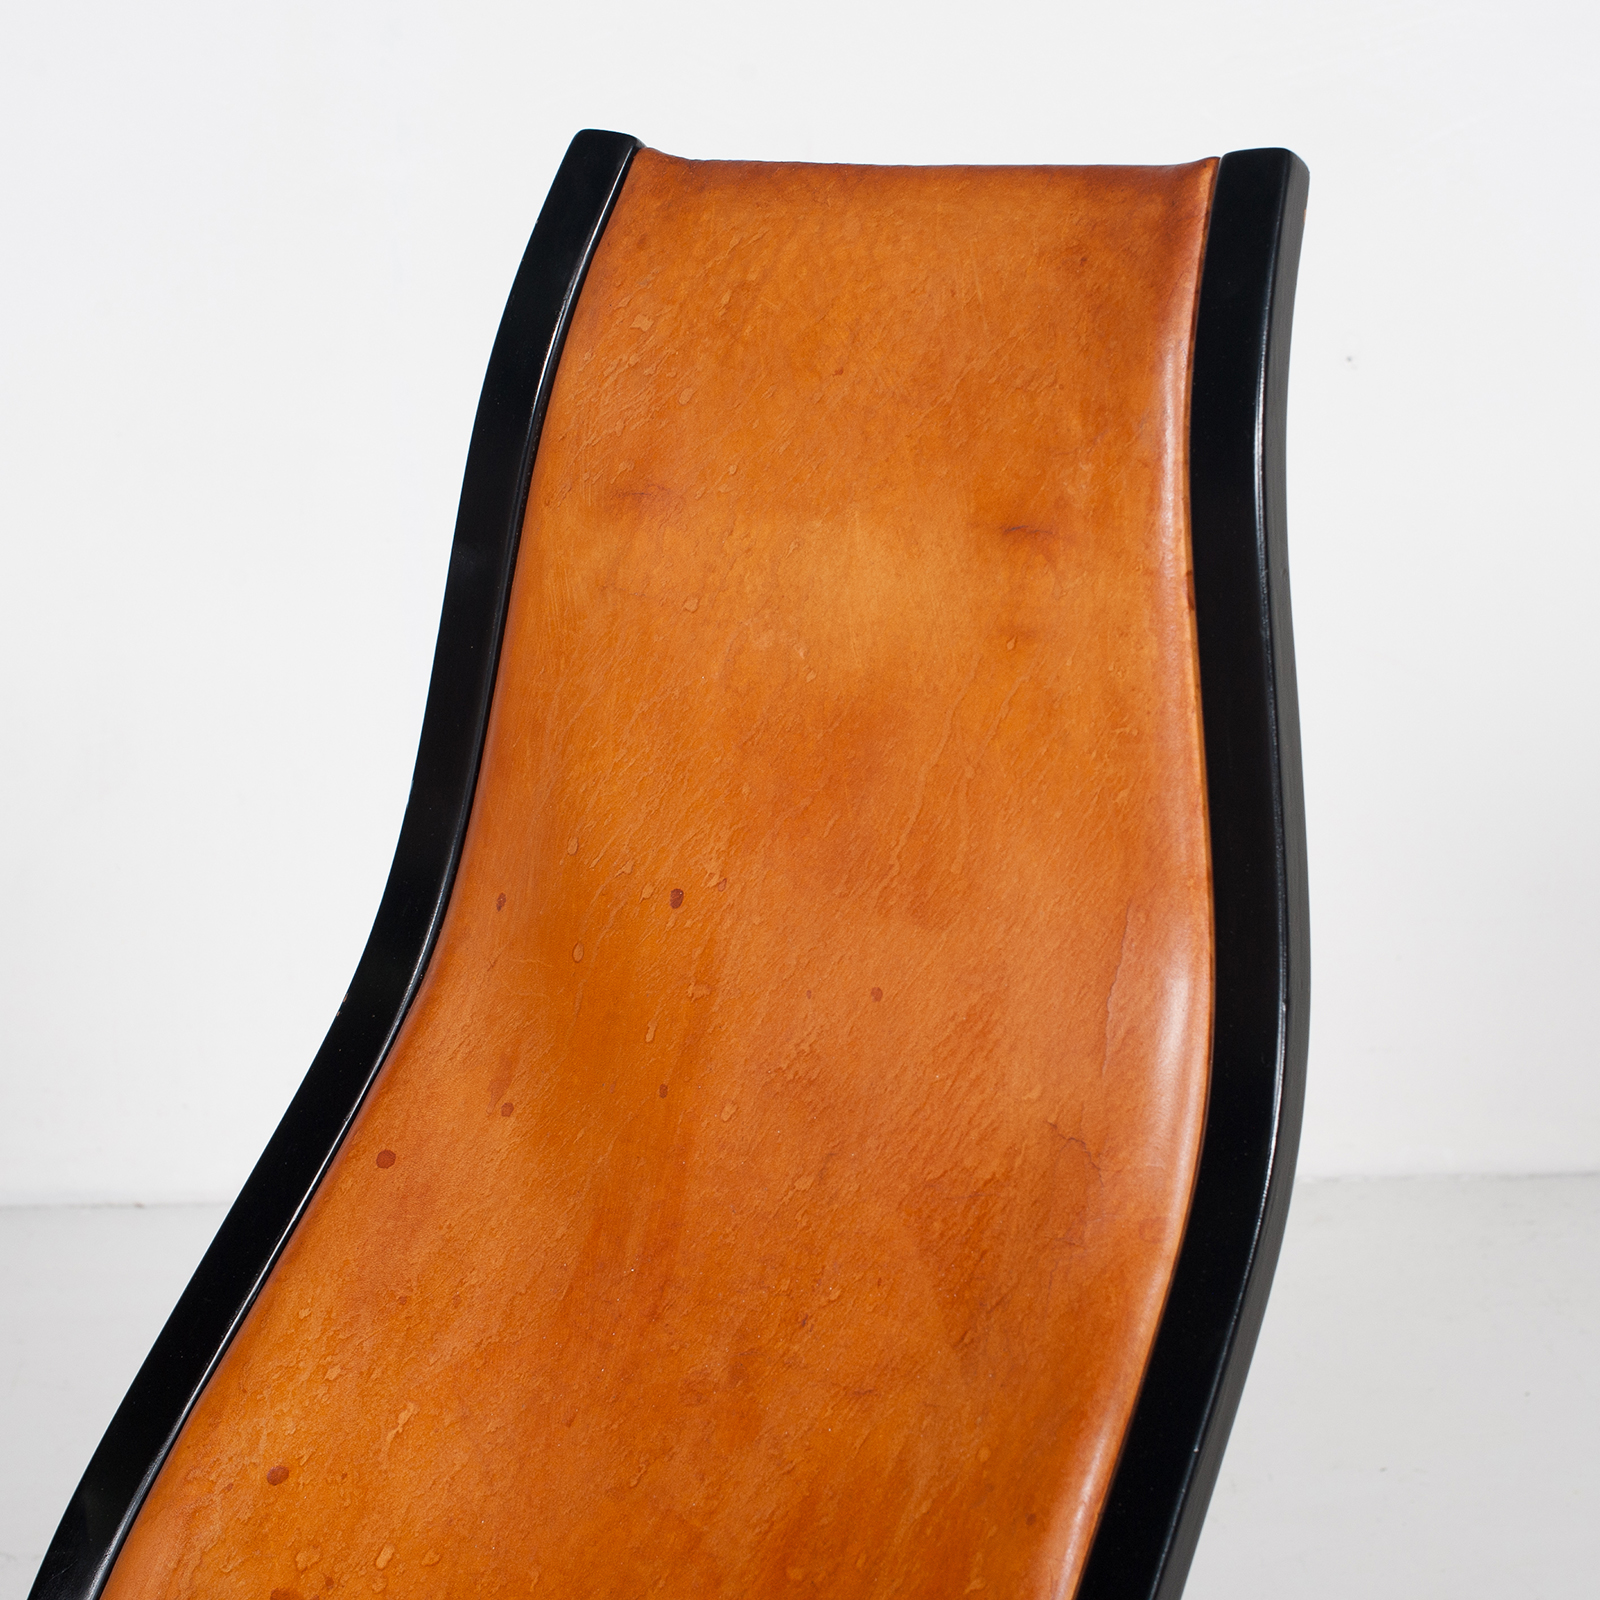 Kurva Lounge Chair By Yngve Ekstrom For Swedese In Tan Leather, 1950s, Sweden 35